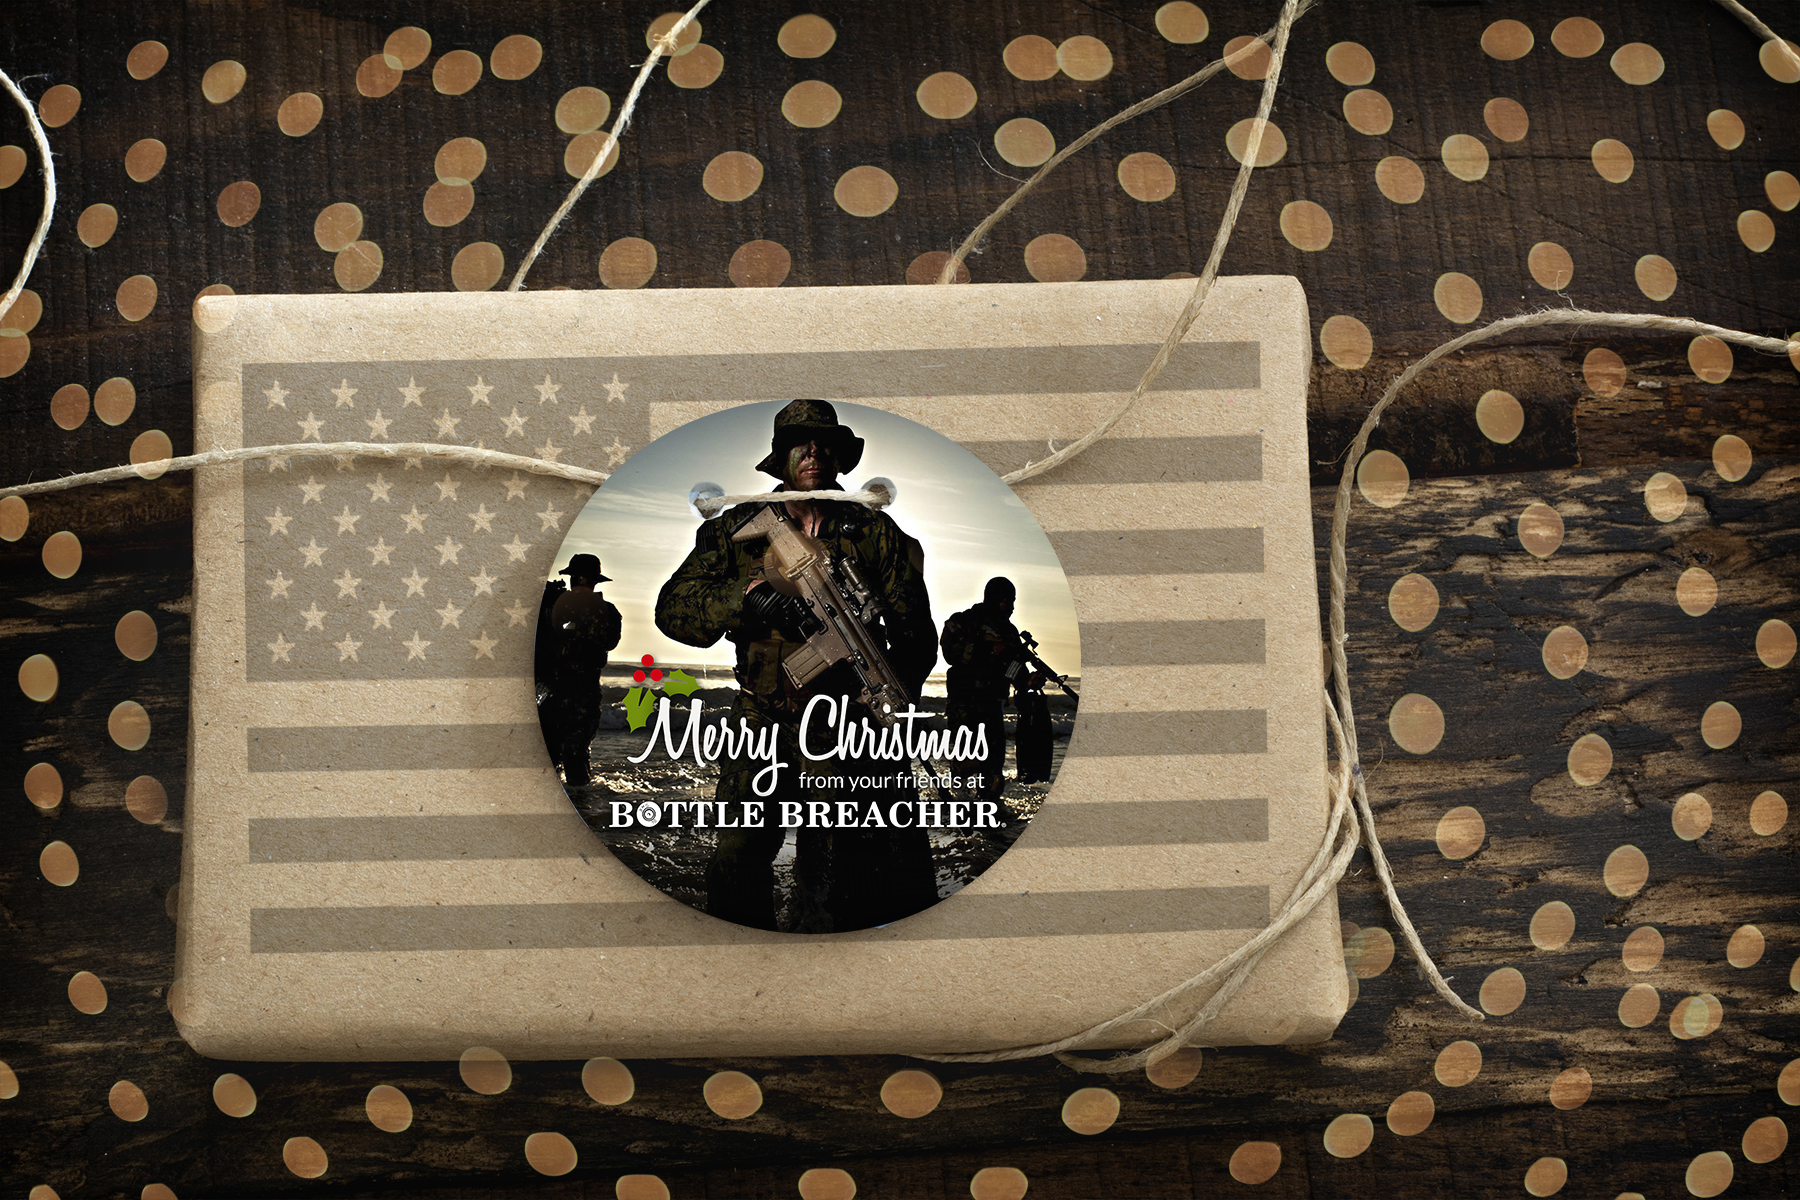 what is the best gift youve ever given or received what made it so special with christmas coming up fast check out military1s guide to the best